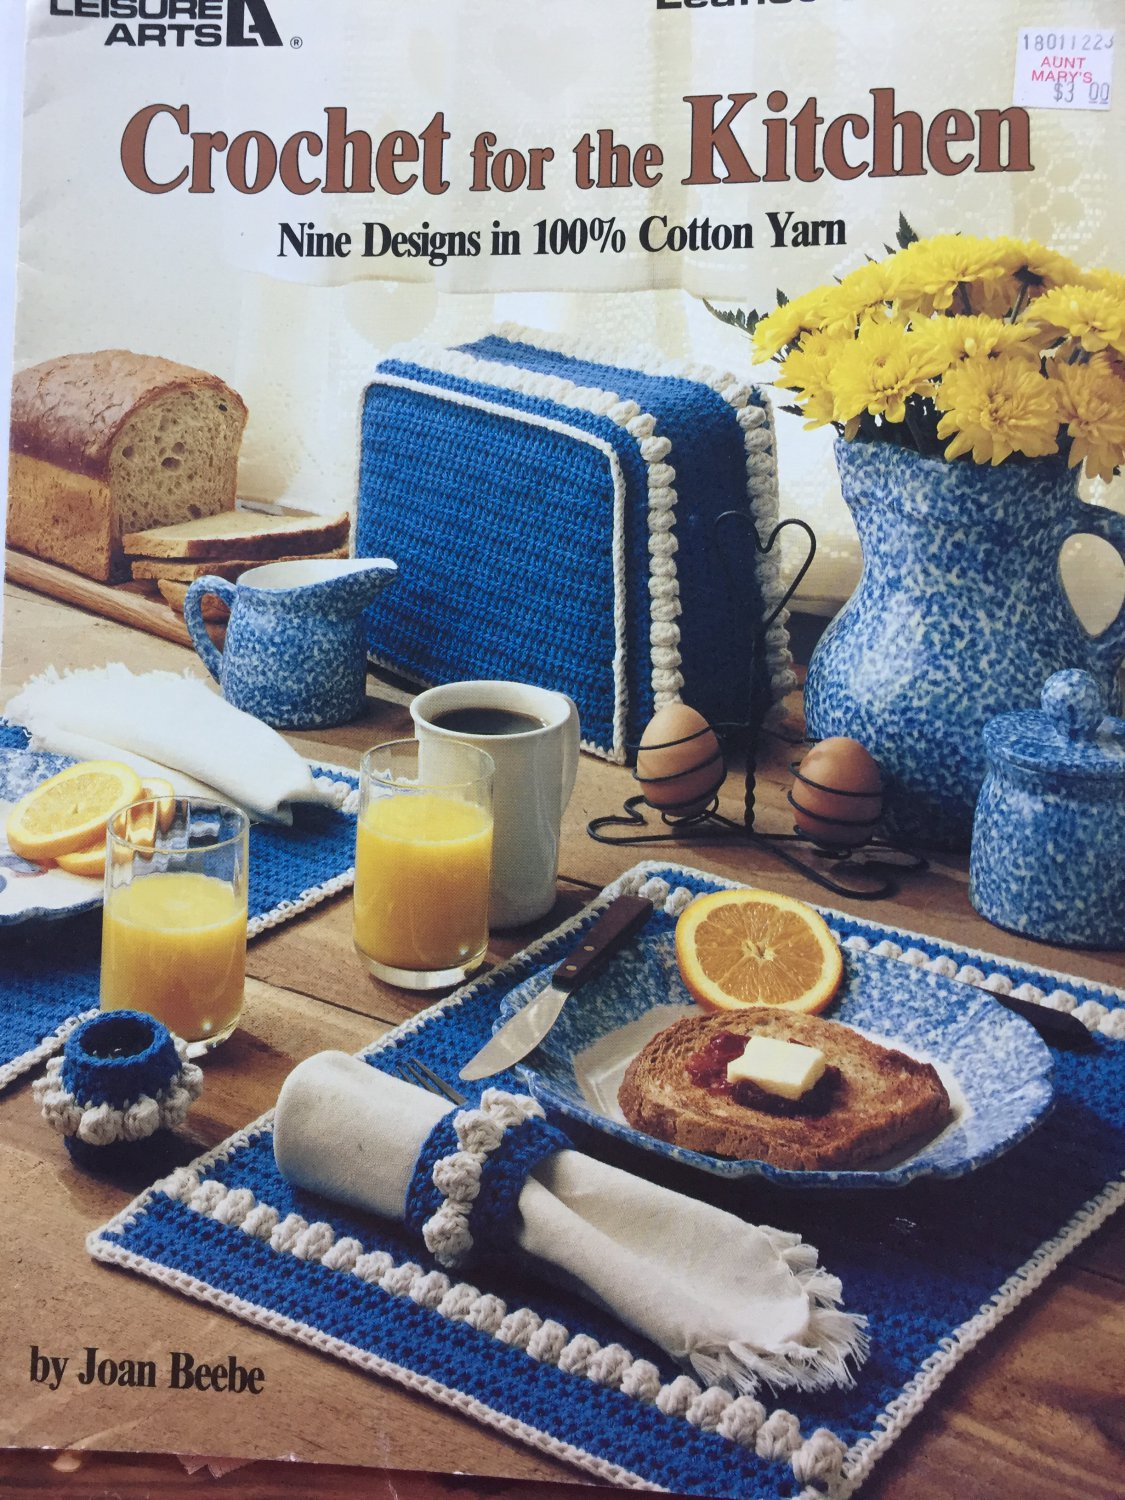 Crochet for the Kitchen Leisure Arts 953 9 designs using cotton yarn